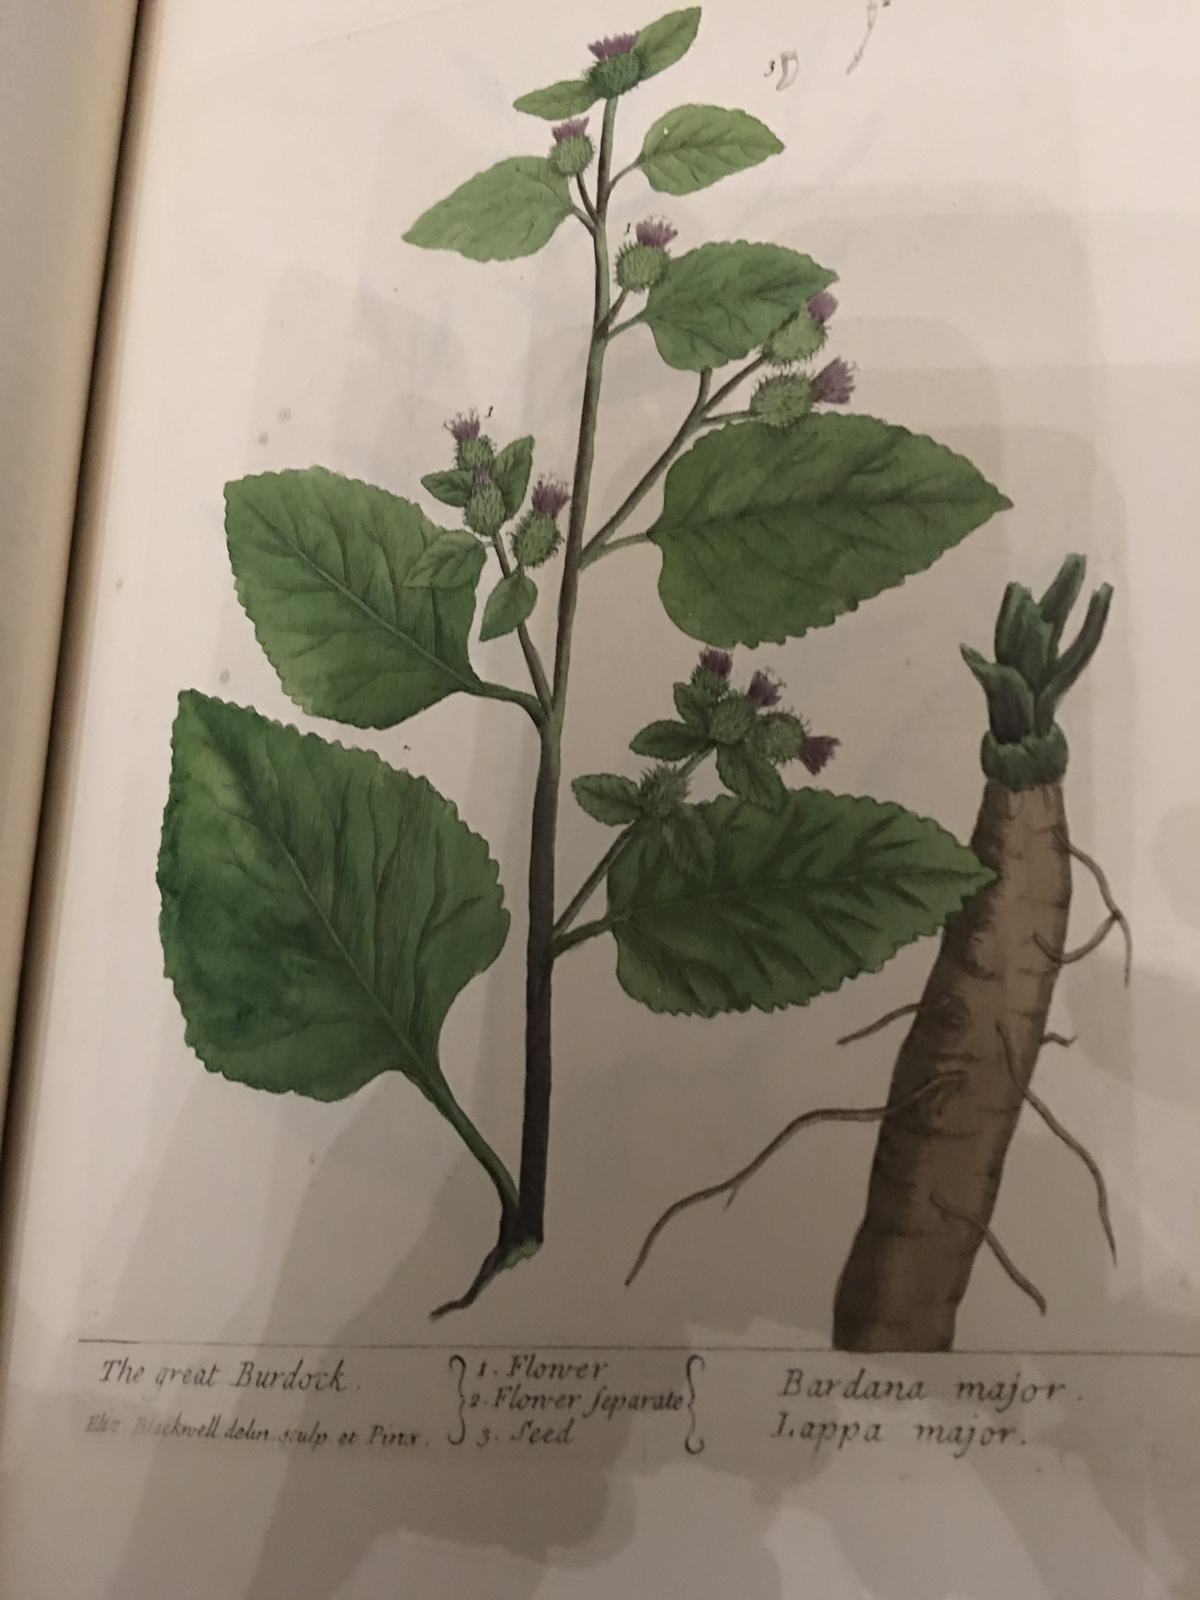 The Great Burdock from Elizabeth Blackwell's A curious herbal